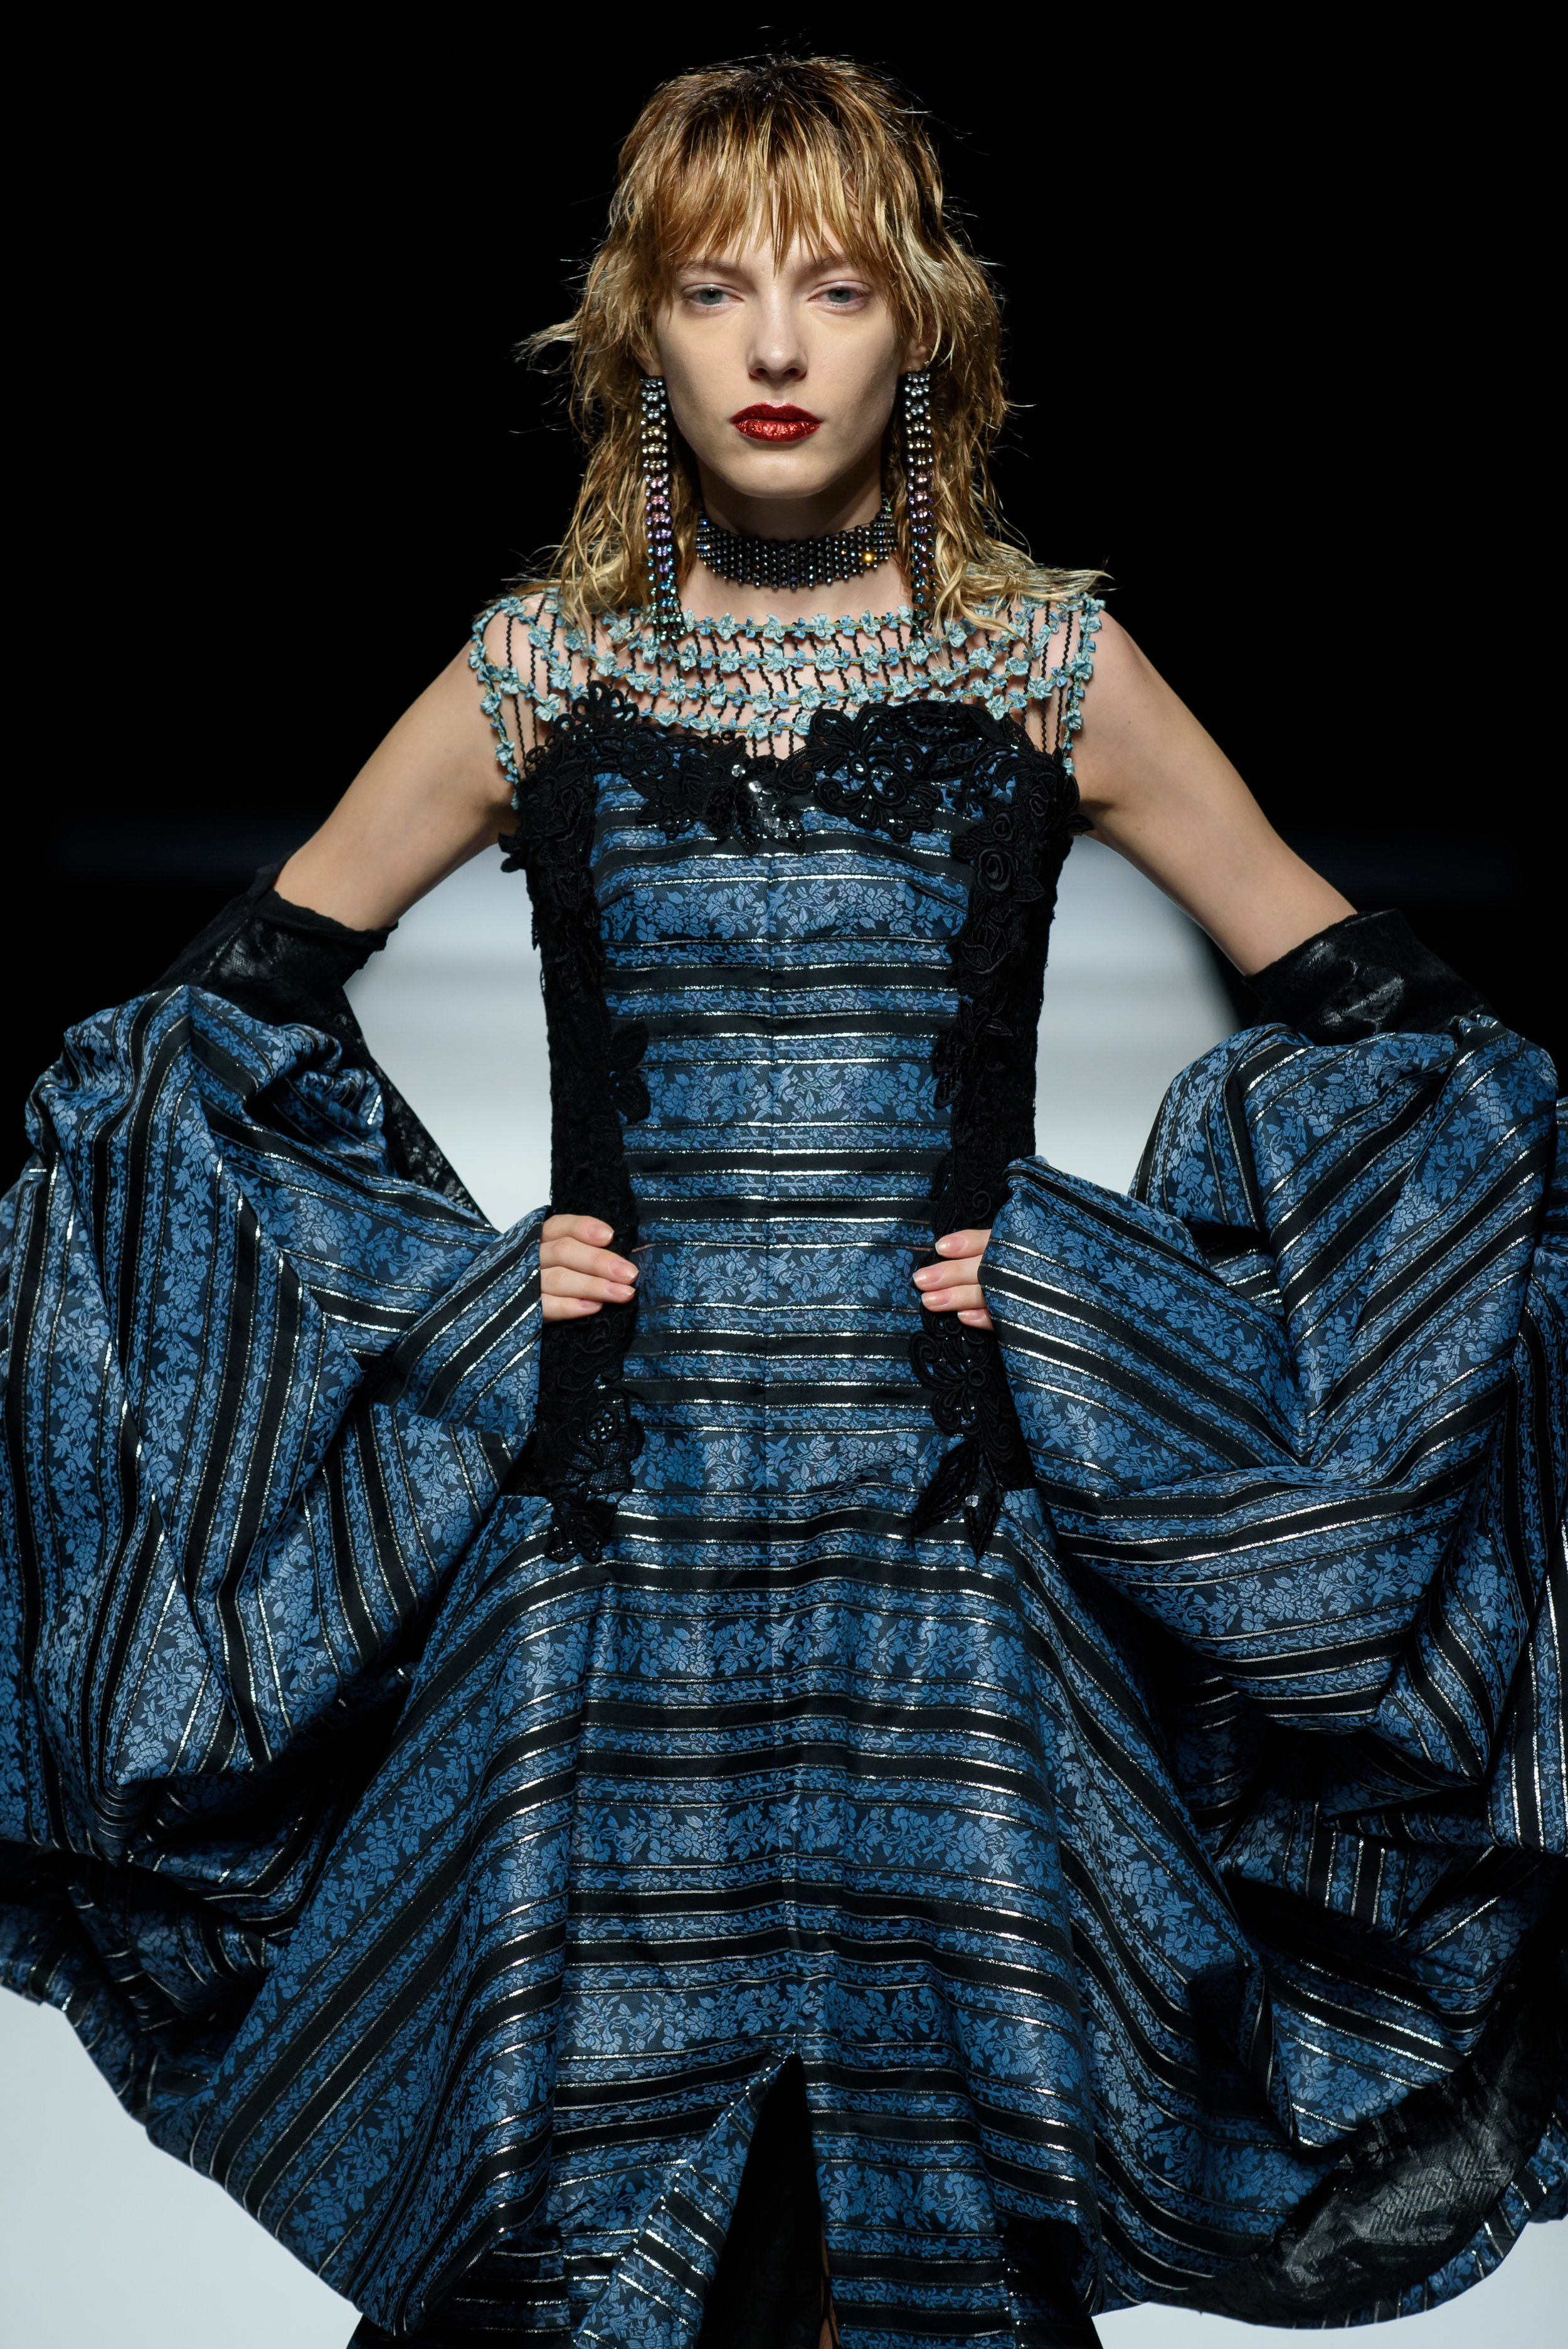 Abundance of Opulence - An opera singer, and an ample array of lavish gowns, the Zin Kato Spring 2018 show was anything but minimalist.